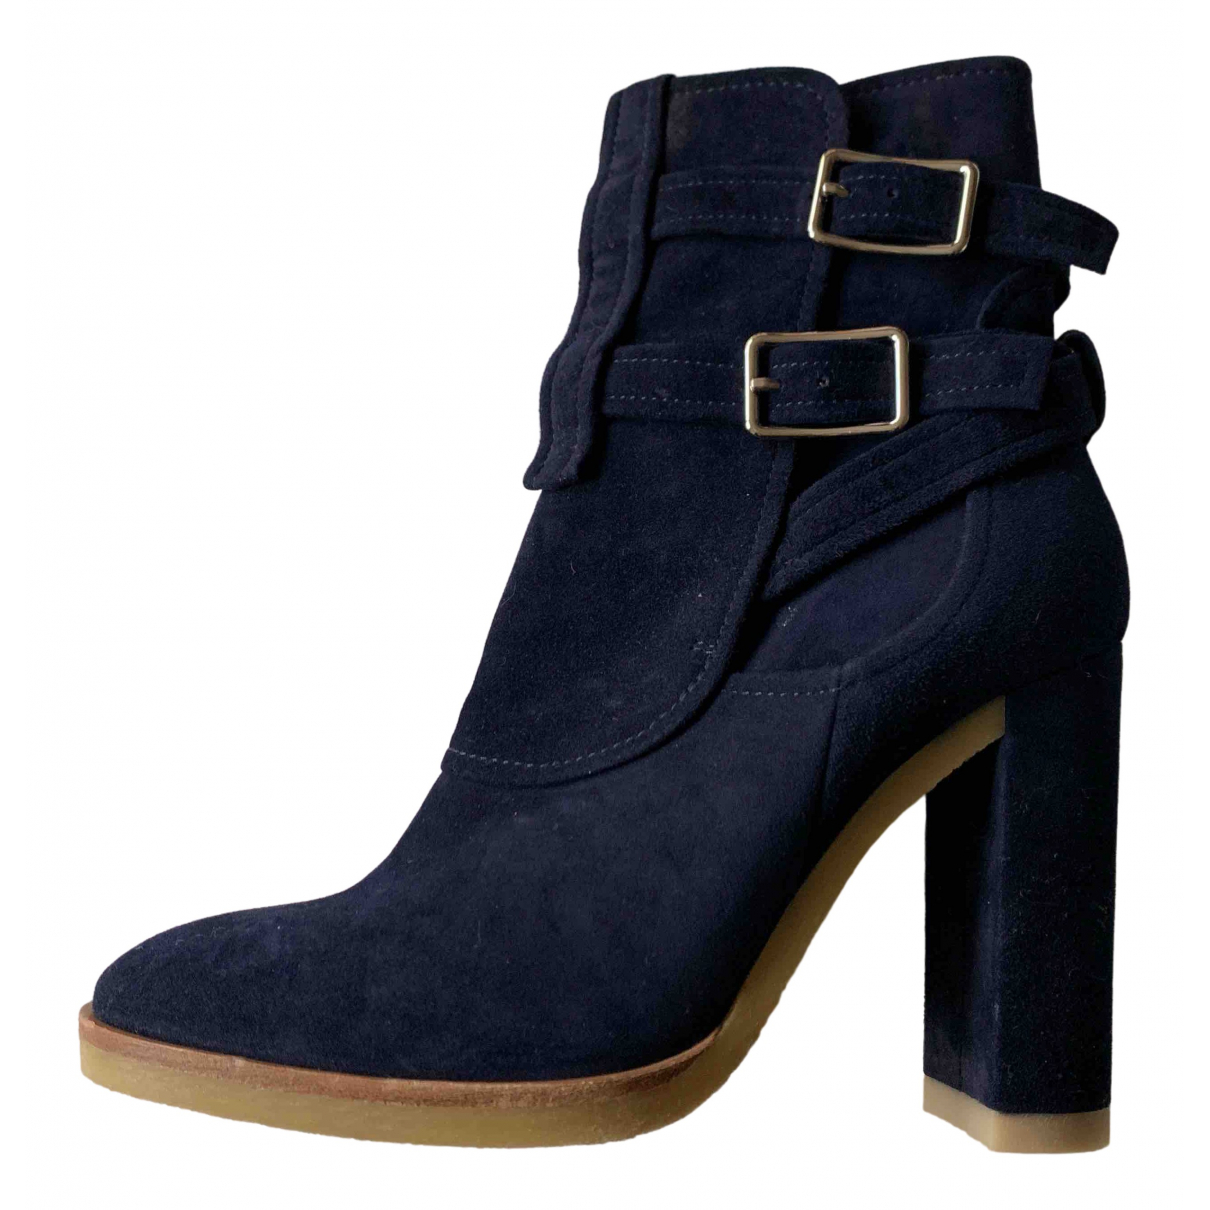 Gianvito Rossi \N Navy Suede Ankle boots for Women 38 EU